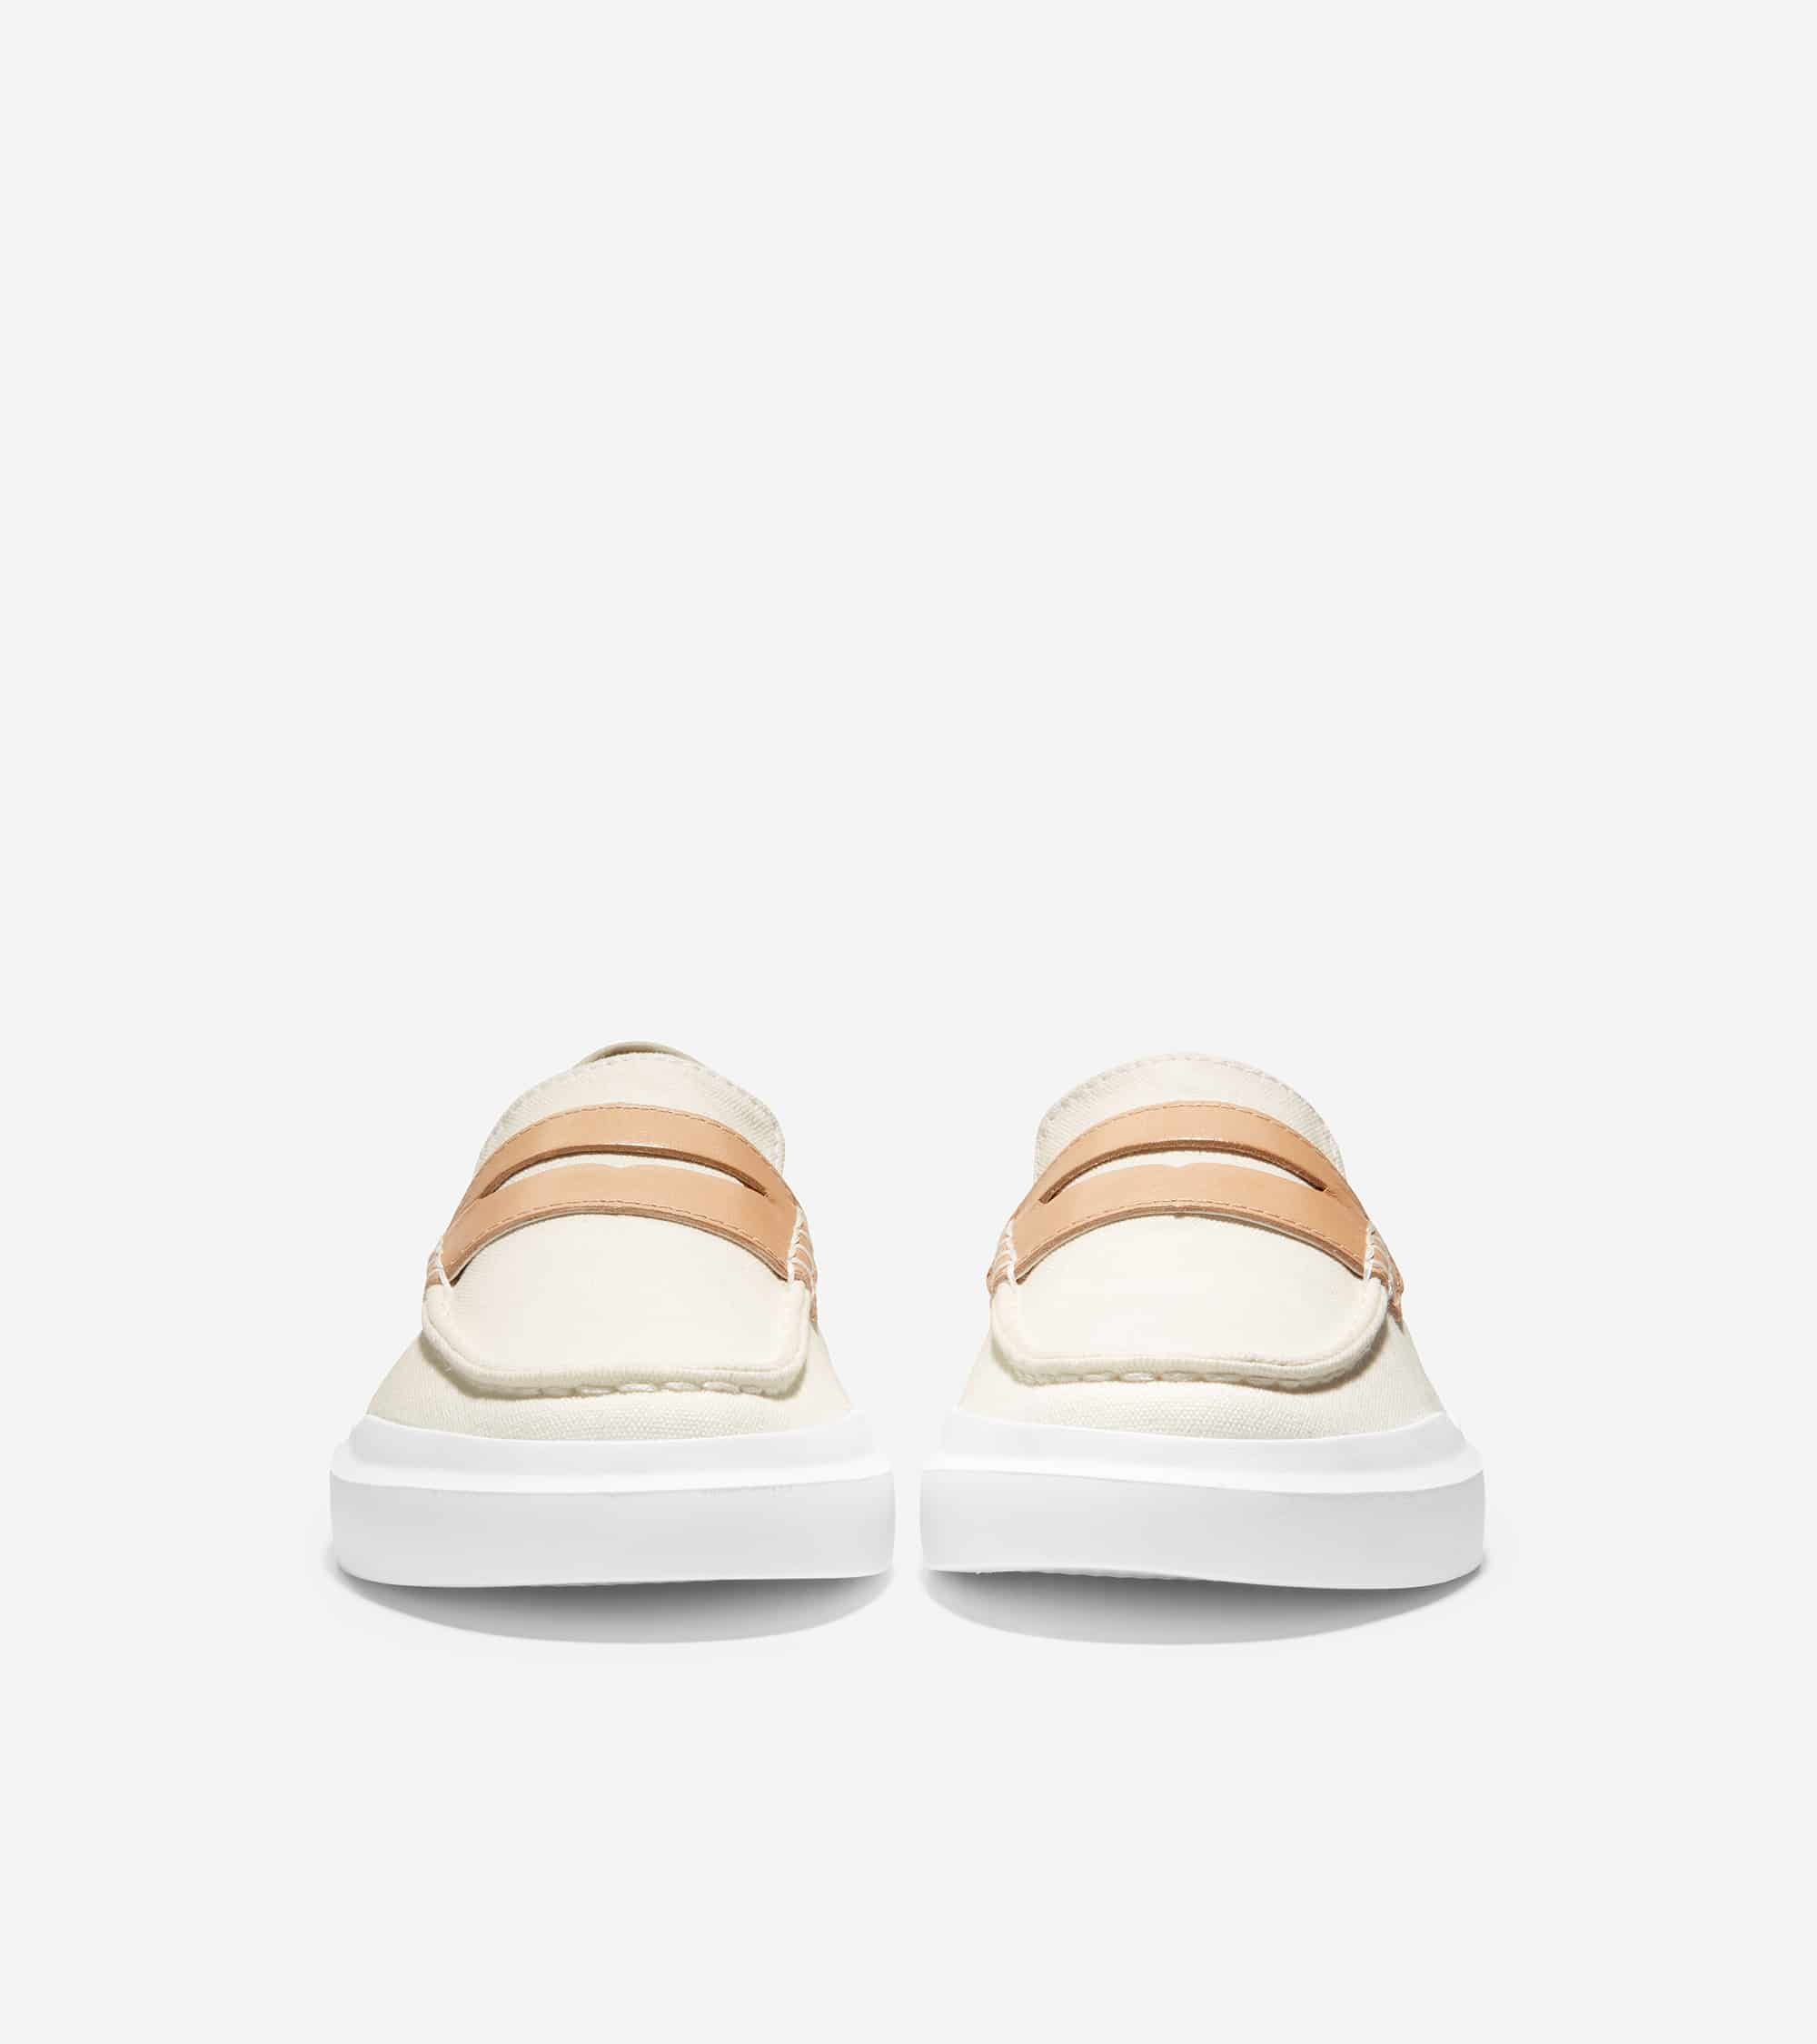 GRANDPRO RALLY CANVAS PENNY LOAFER IVORY CANVAS/CH NATURAL